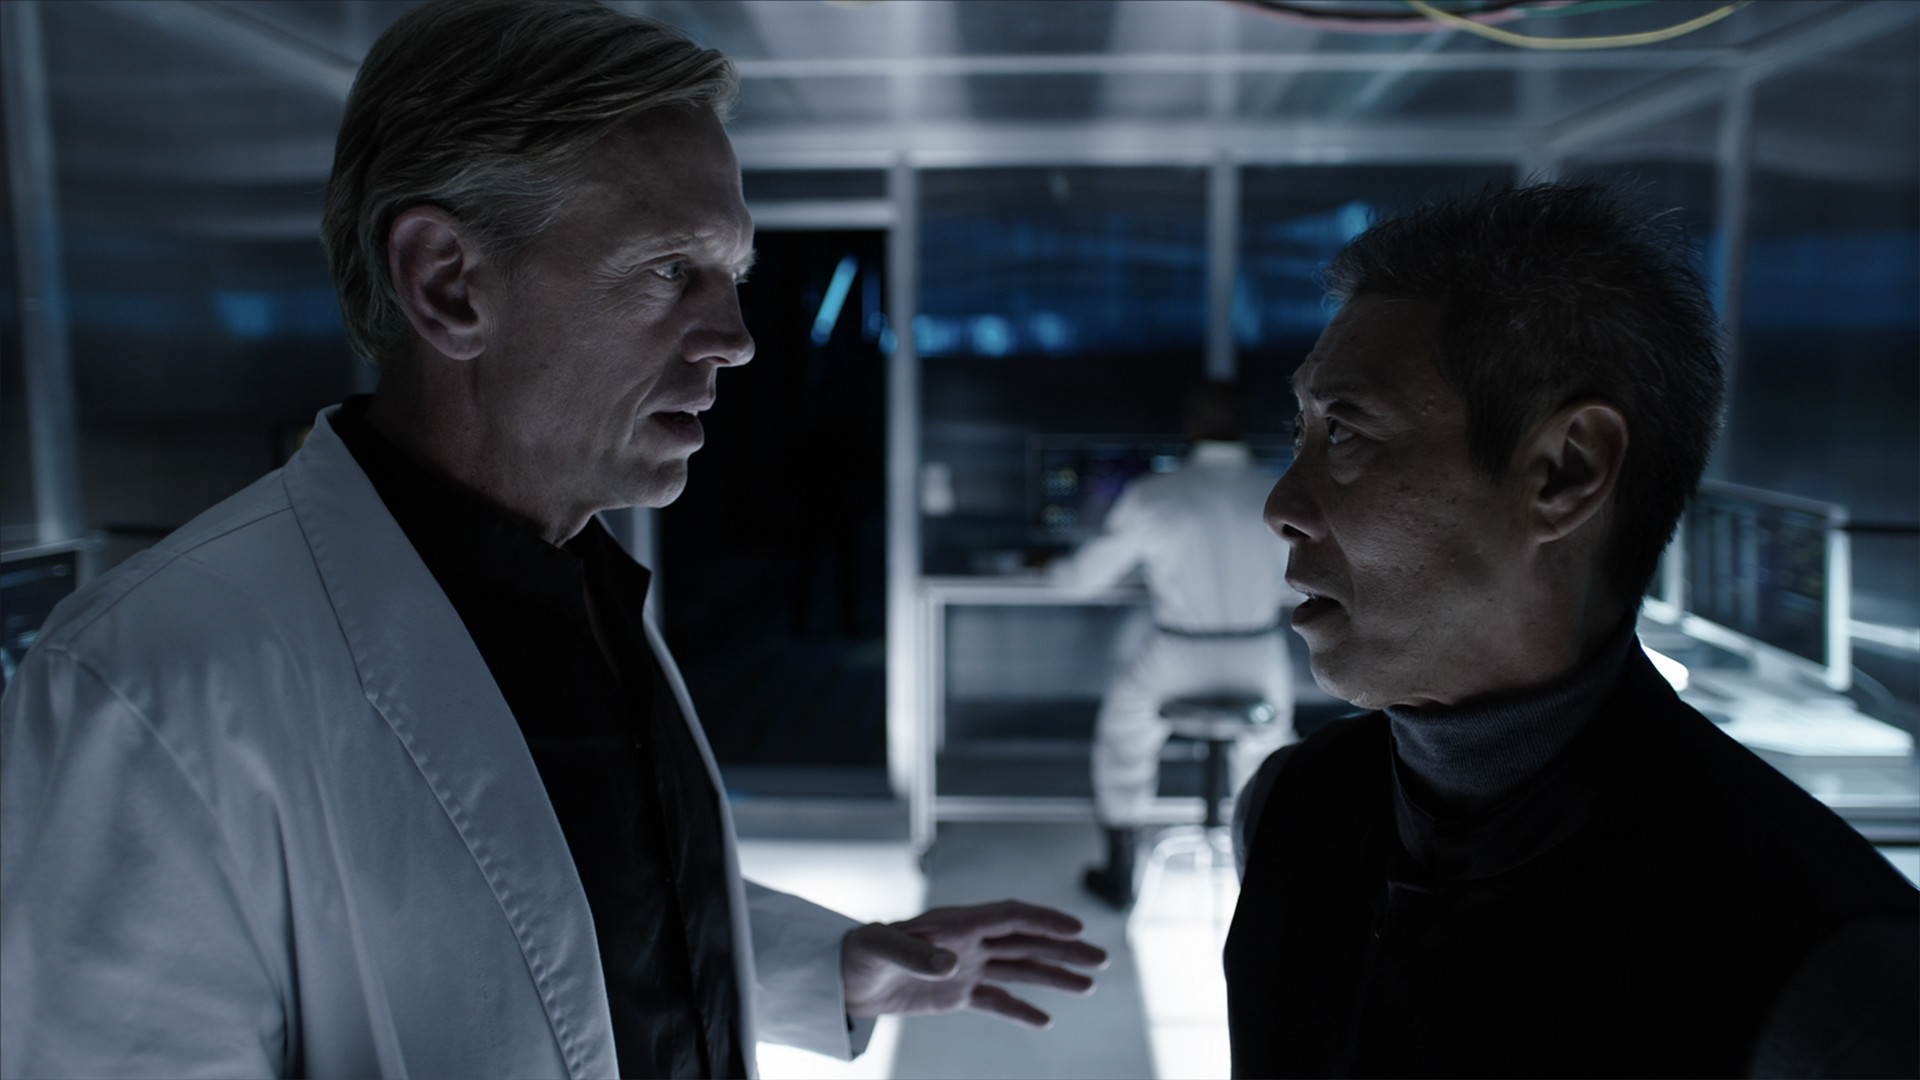 theexpanse_10thoughts_episode303_6.jpg